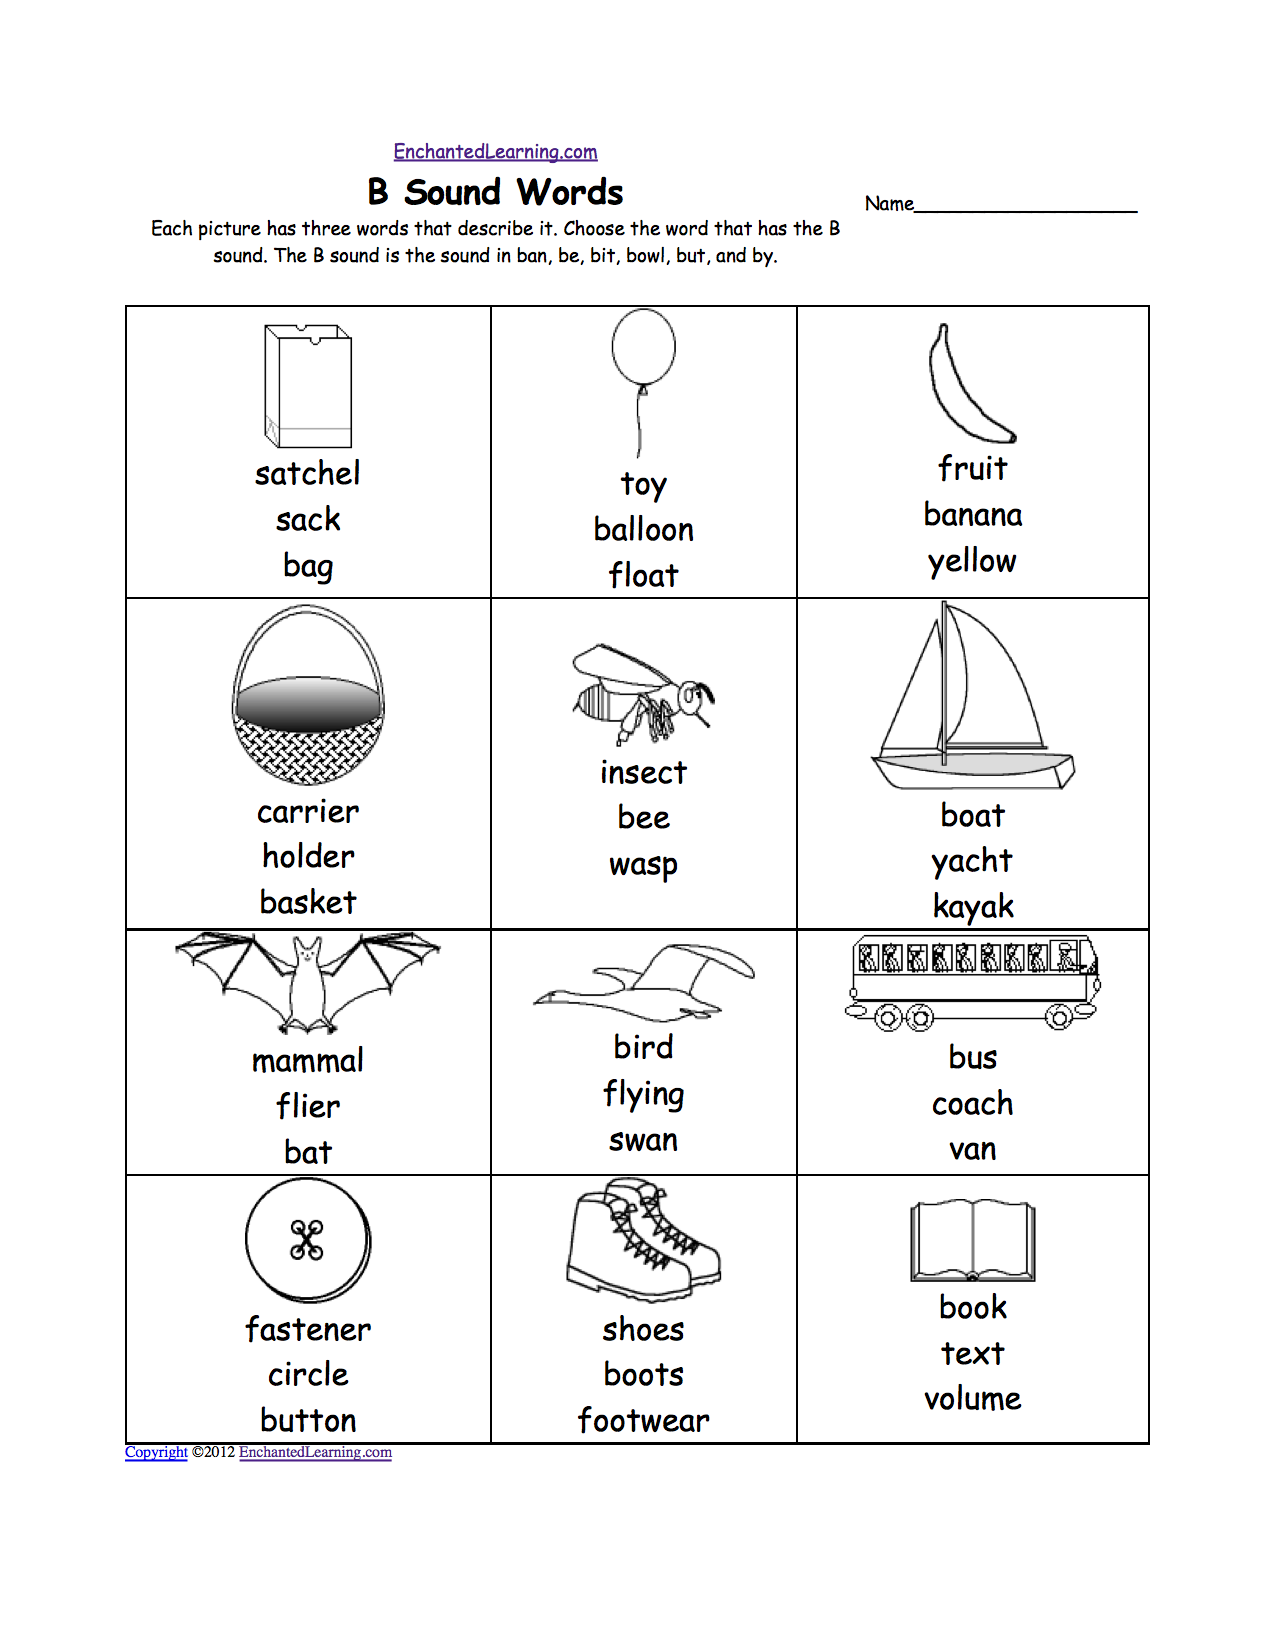 Proatmealus  Unusual Phonics Worksheets Multiple Choice Worksheets To Print  With Fascinating Quotbquot Sound Phonics Worksheet Multiple Choice Each Picture Has Three Words That Describe It Choose The Word That Has A Quotbquot Sound The Quotbquot Sound Is The Sound  With Beauteous Subtraction Using Number Line Worksheets Also Alphabet Writing Worksheets For Preschoolers In Addition Hard C Soft C Worksheets And Worksheets For Middle School English As Well As Reduce Fractions To Simplest Form Worksheet Additionally Ordinal Worksheets From Enchantedlearningcom With Proatmealus  Fascinating Phonics Worksheets Multiple Choice Worksheets To Print  With Beauteous Quotbquot Sound Phonics Worksheet Multiple Choice Each Picture Has Three Words That Describe It Choose The Word That Has A Quotbquot Sound The Quotbquot Sound Is The Sound  And Unusual Subtraction Using Number Line Worksheets Also Alphabet Writing Worksheets For Preschoolers In Addition Hard C Soft C Worksheets From Enchantedlearningcom